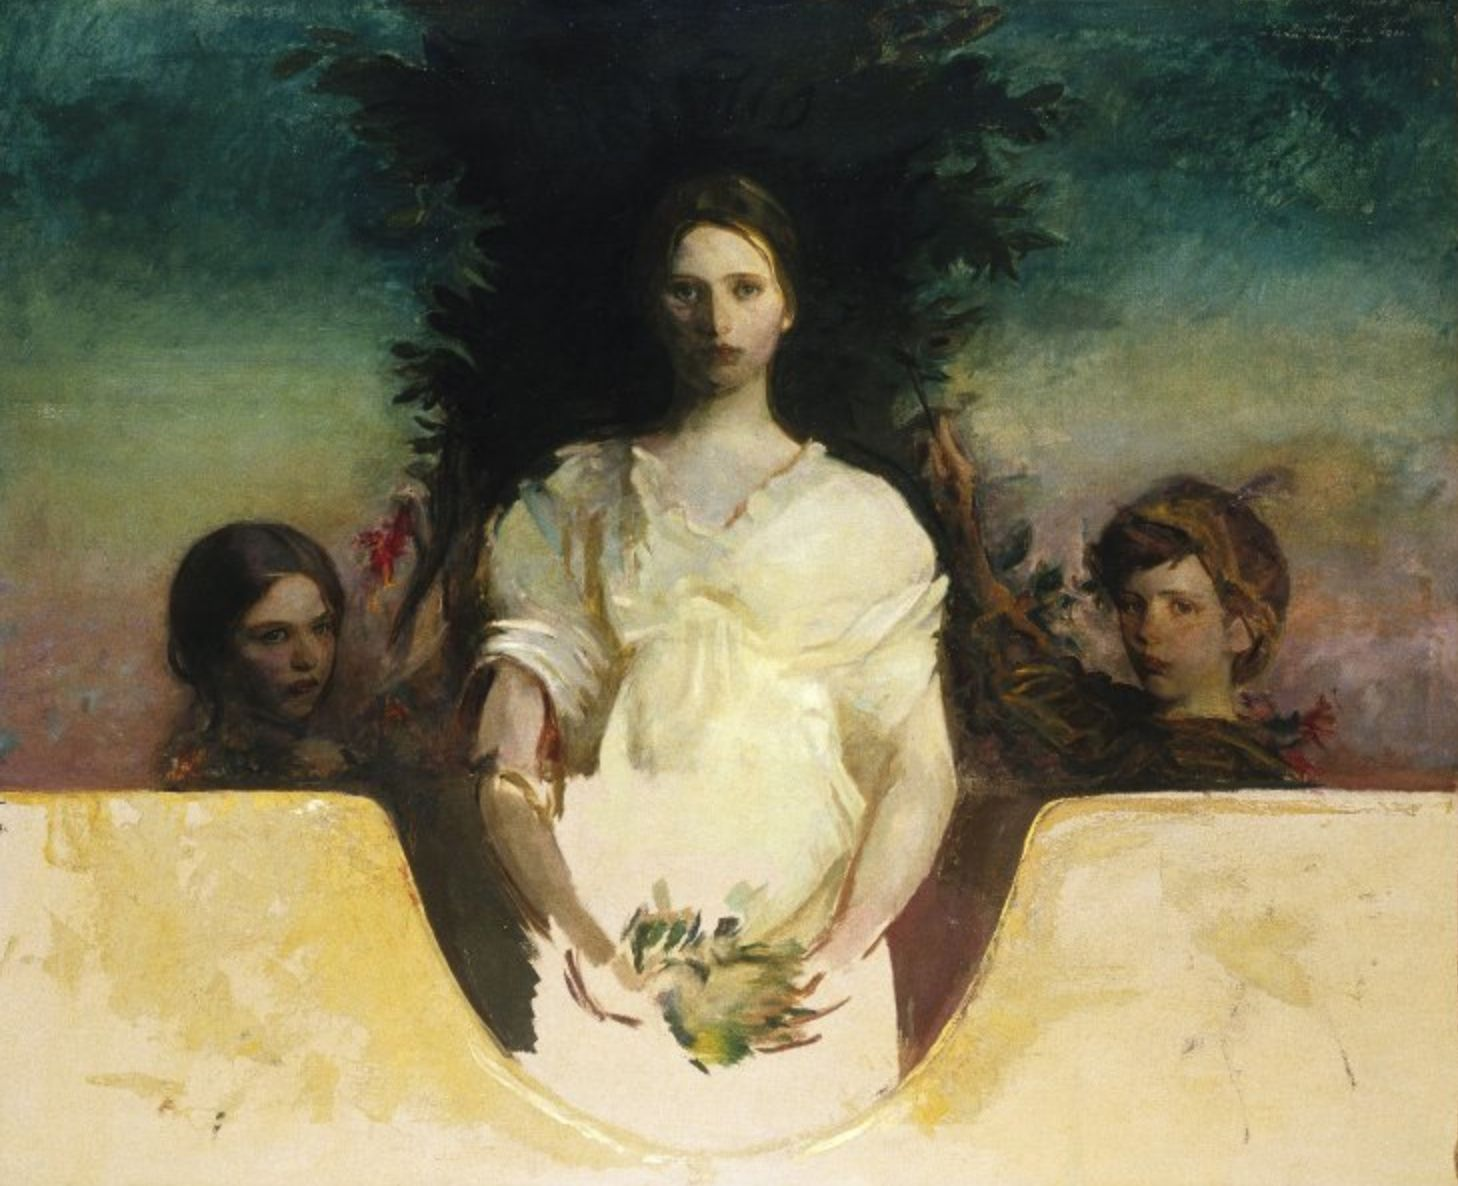 """""""My Children"""" by Abbott Handerson Thayer. c1896-1919, oil on canvas. The artist's children, Gladys, Mary and Gerald. In the collection of The Brooklyn Museum of Art, NY."""